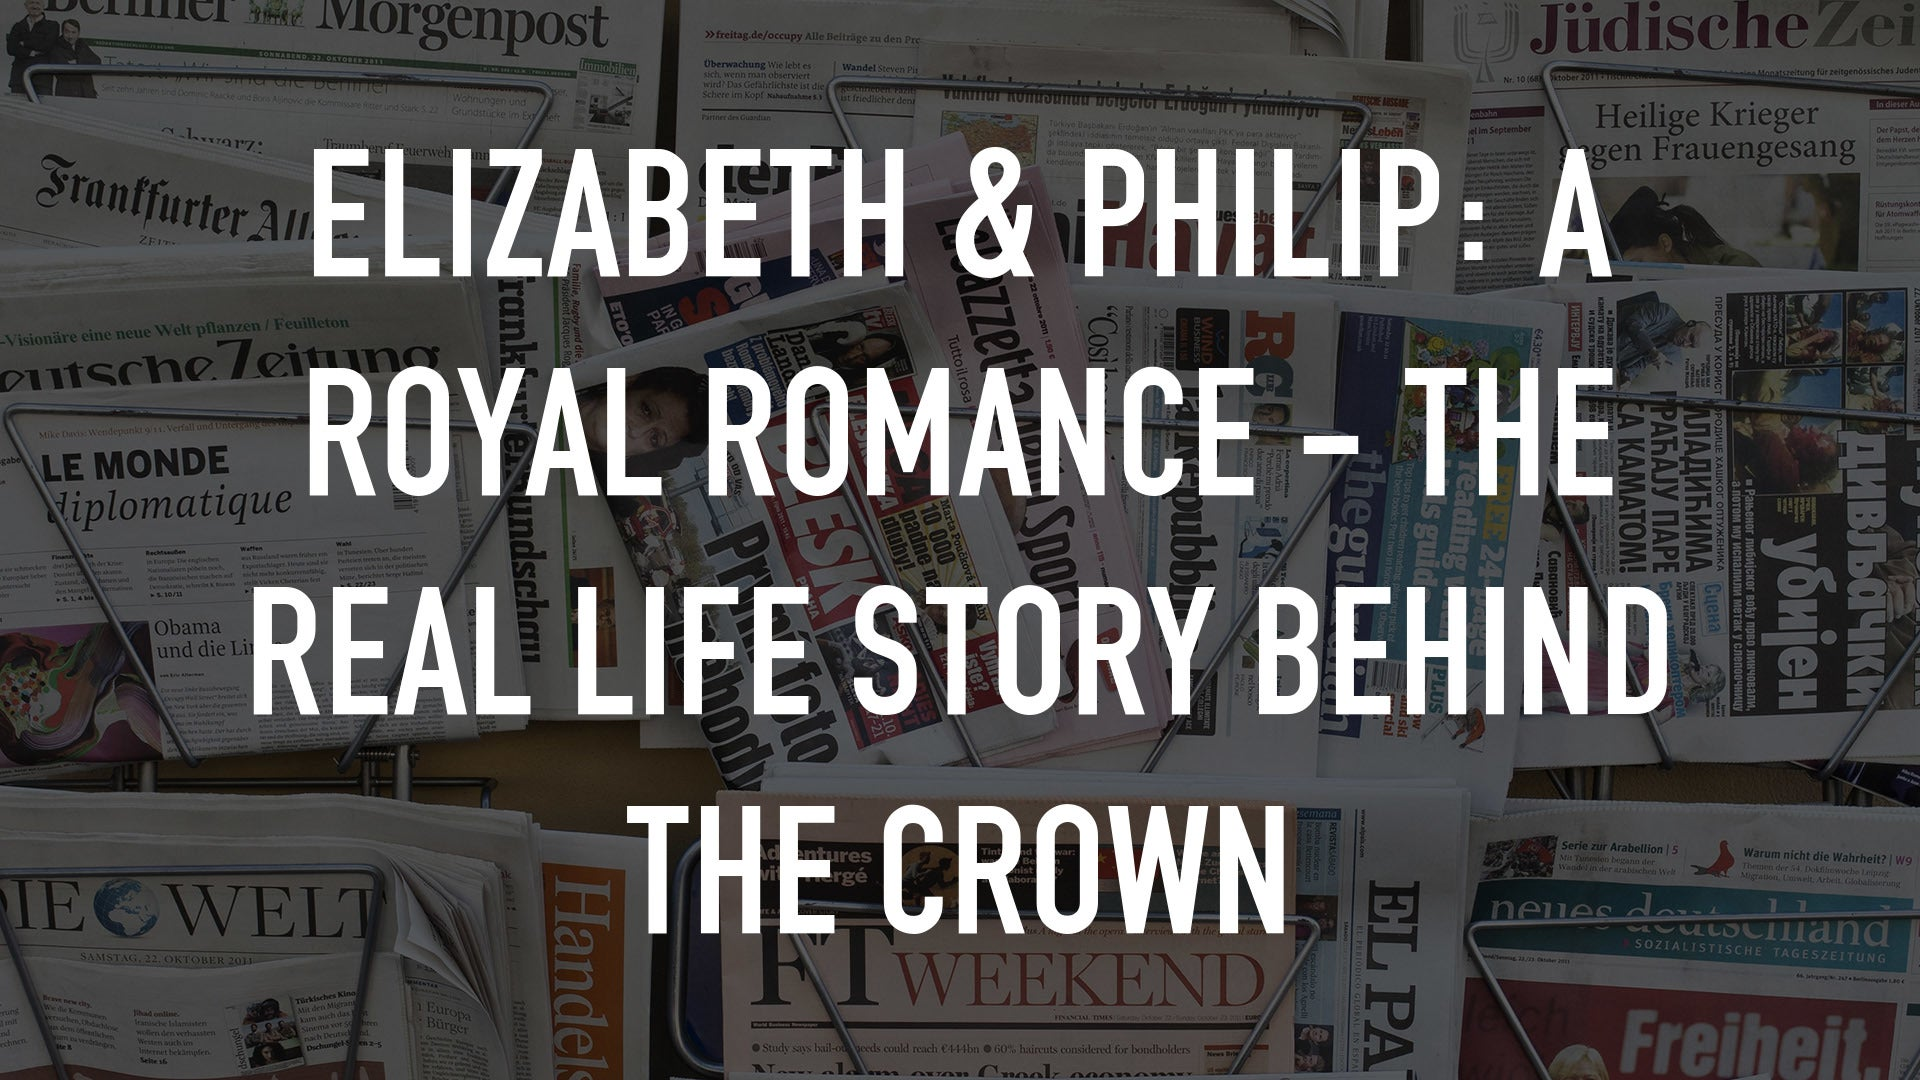 Elizabeth & Philip: A Royal Romance - The Real Life Story Behind the Crown